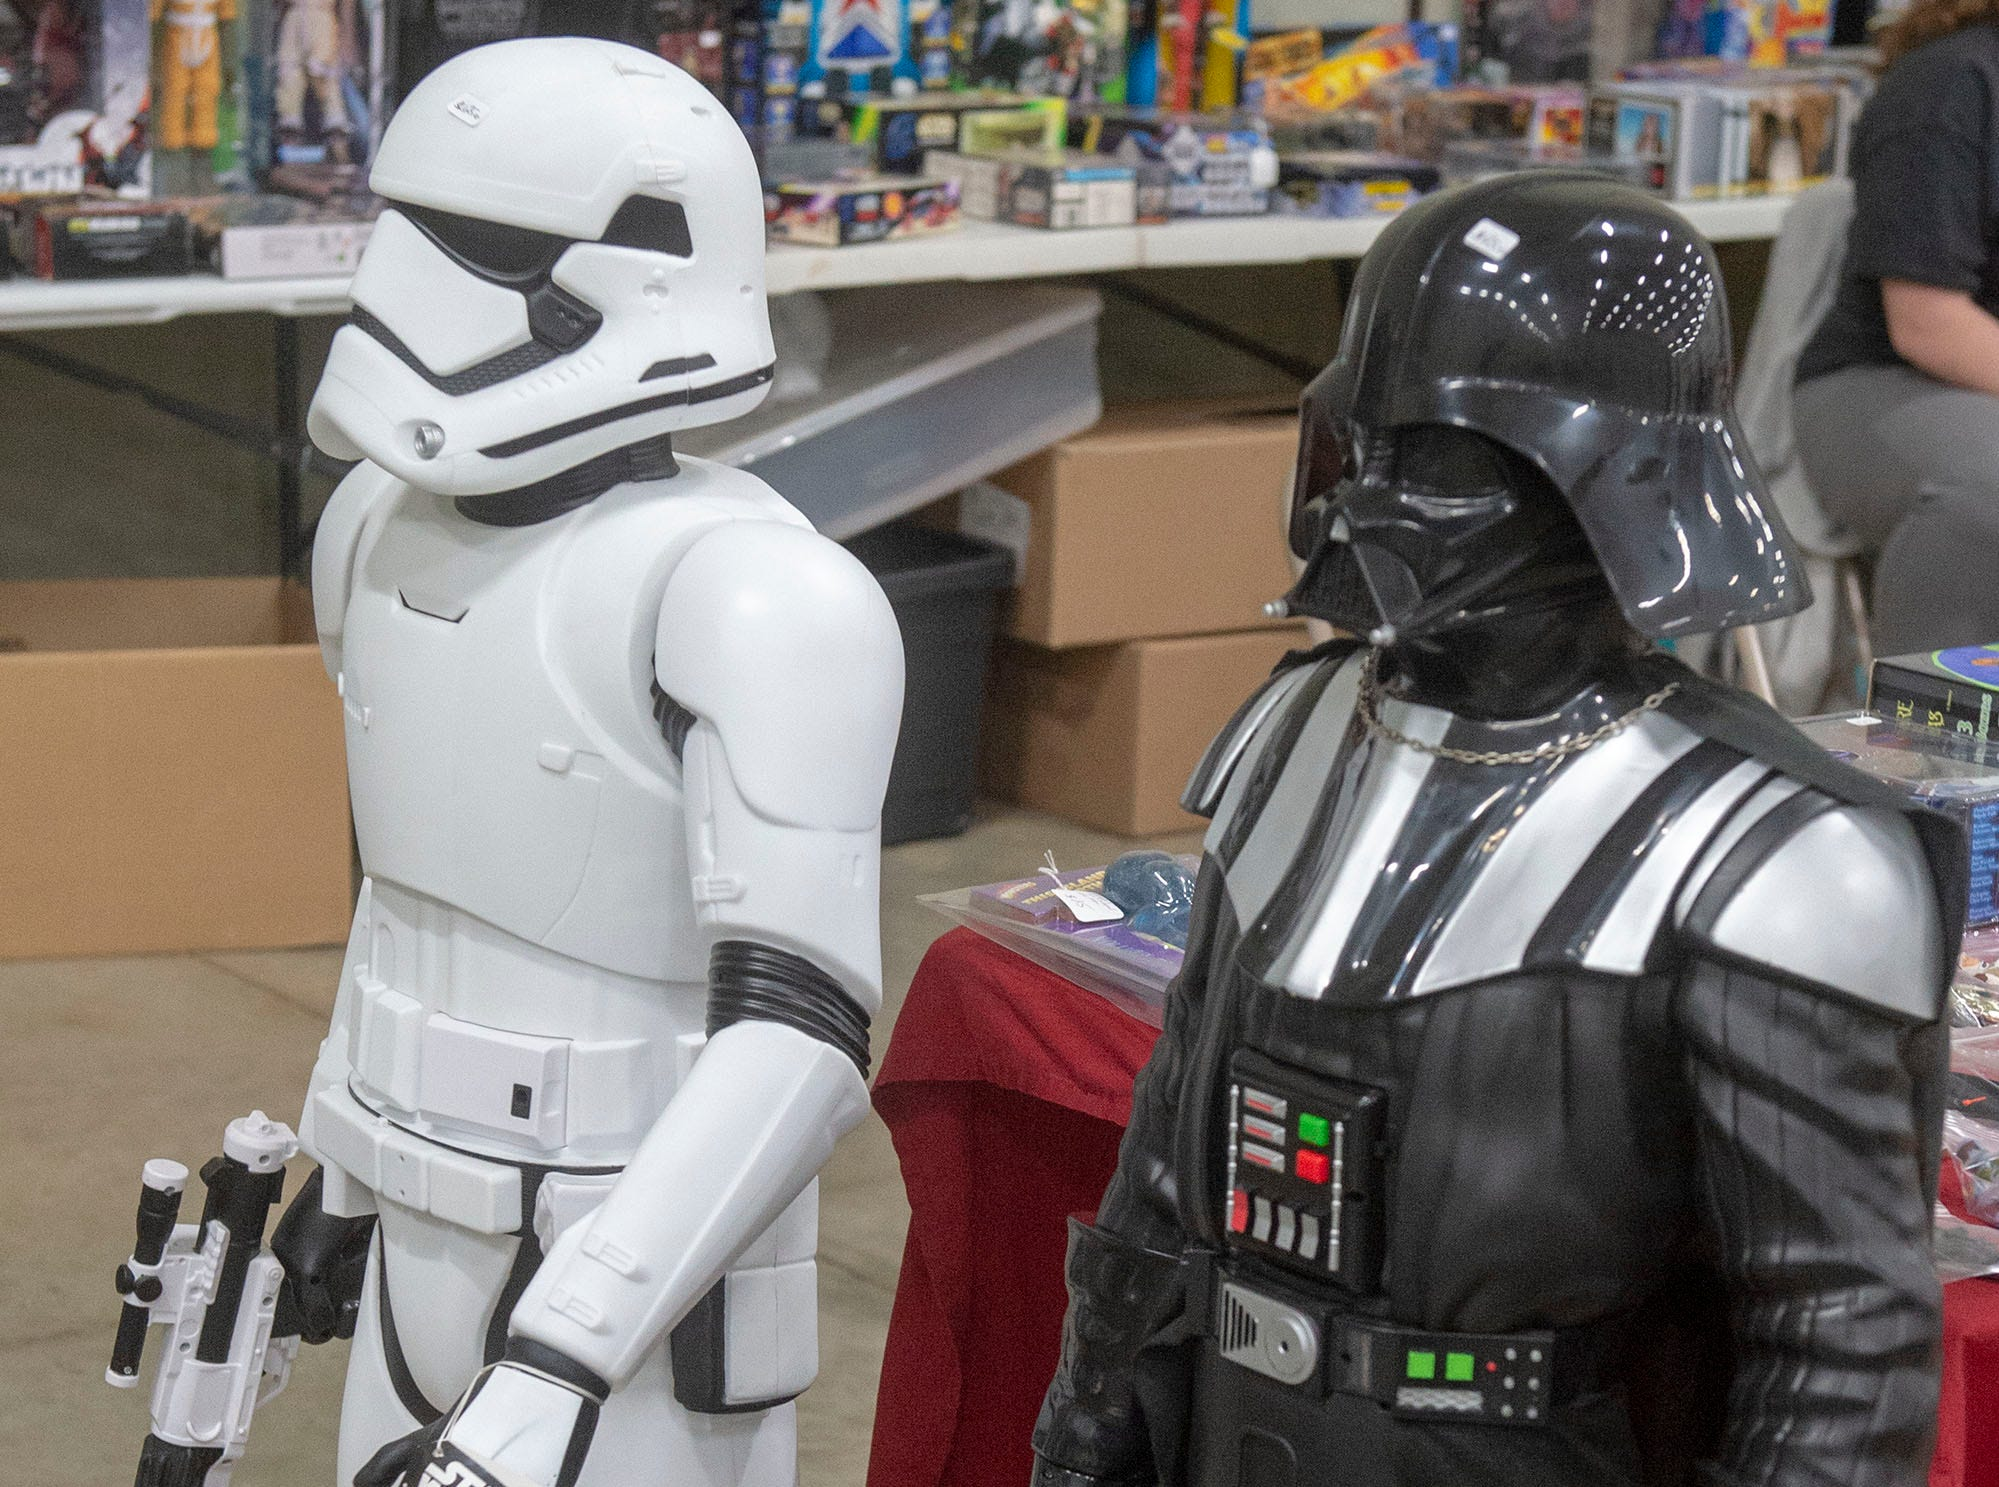 They aren't life-sized, but these 4-foot Storm Trooper and Darth Vader are available at the White Rose Comic Con, which runs through Sunday, March 24, 2019 at Utz Arena of the York Fairgrounds.